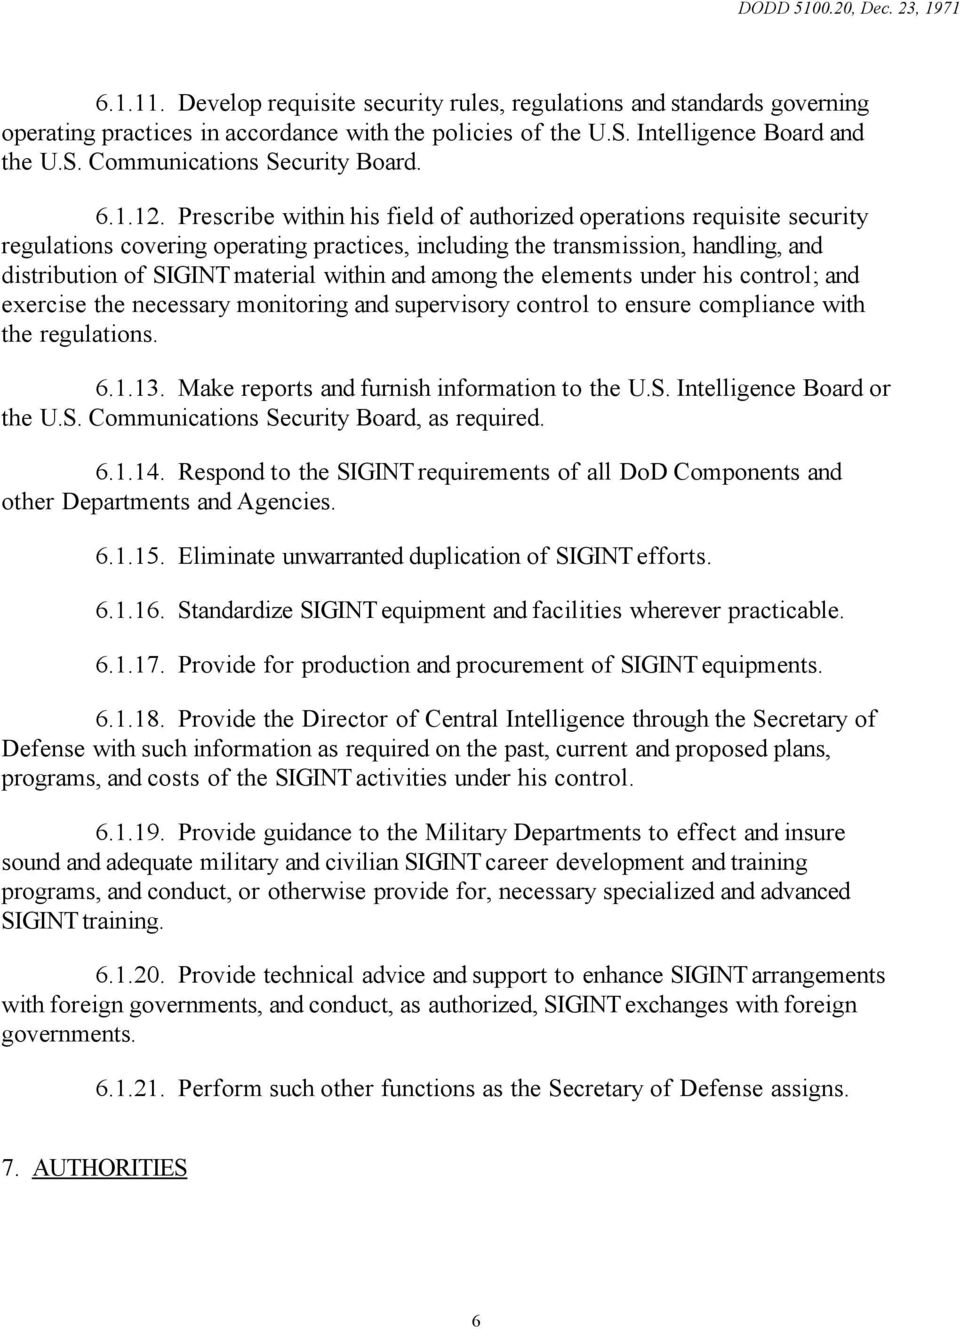 Prescribe within his field of authorized operations requisite security regulations covering operating practices, including the transmission, handling, and distribution of SIGINT material within and